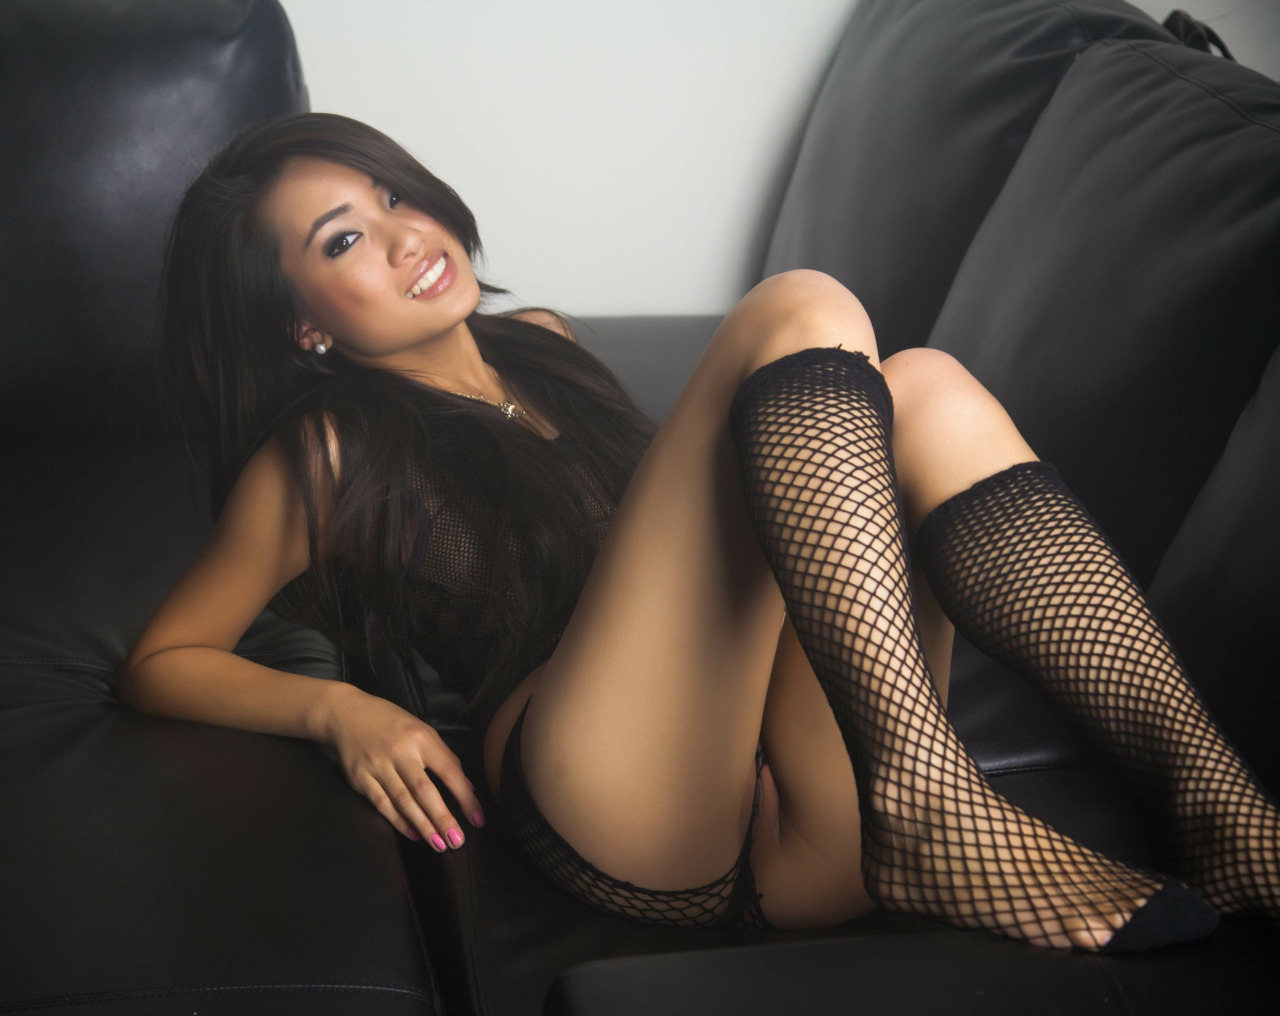 Sandra-Wong-nude-sexy-photos-leaked-www.sexvcl.net-015 Burmese model Sandra Wong nude sexy photos leaked